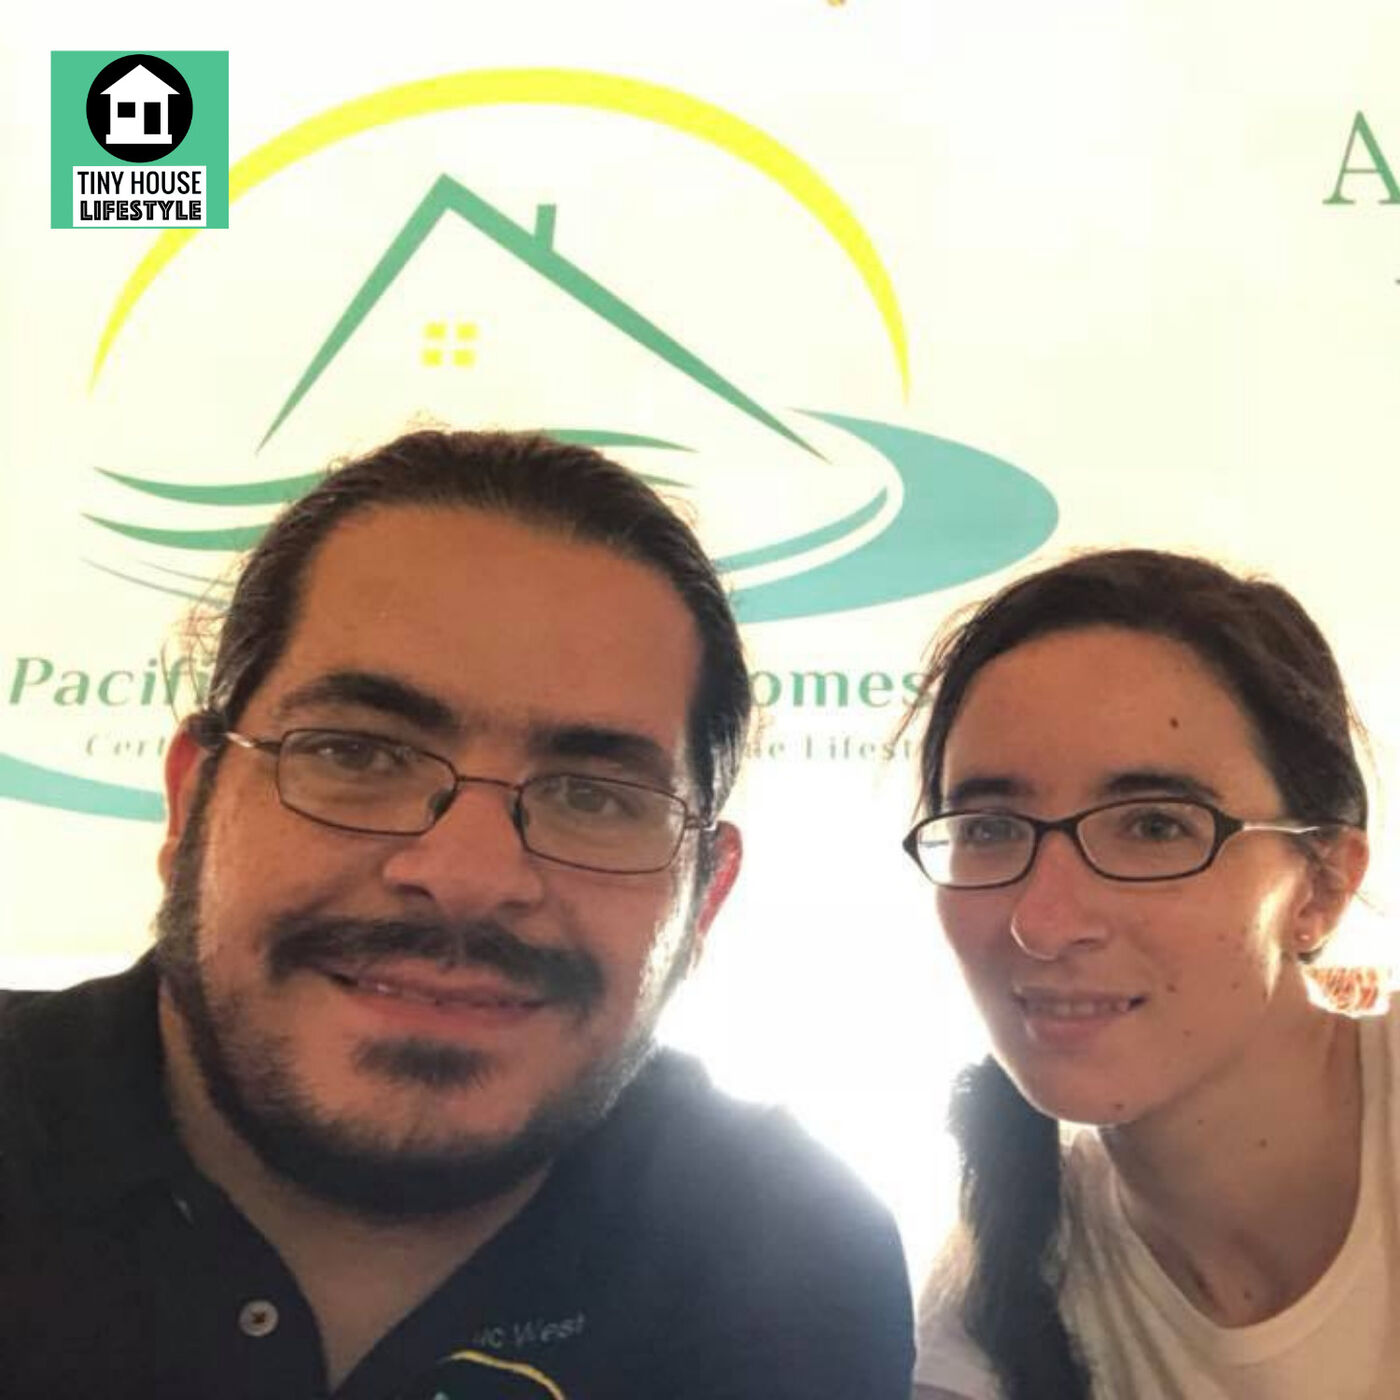 Is Tiny House Certification Worth It? with Alex Ontiveros